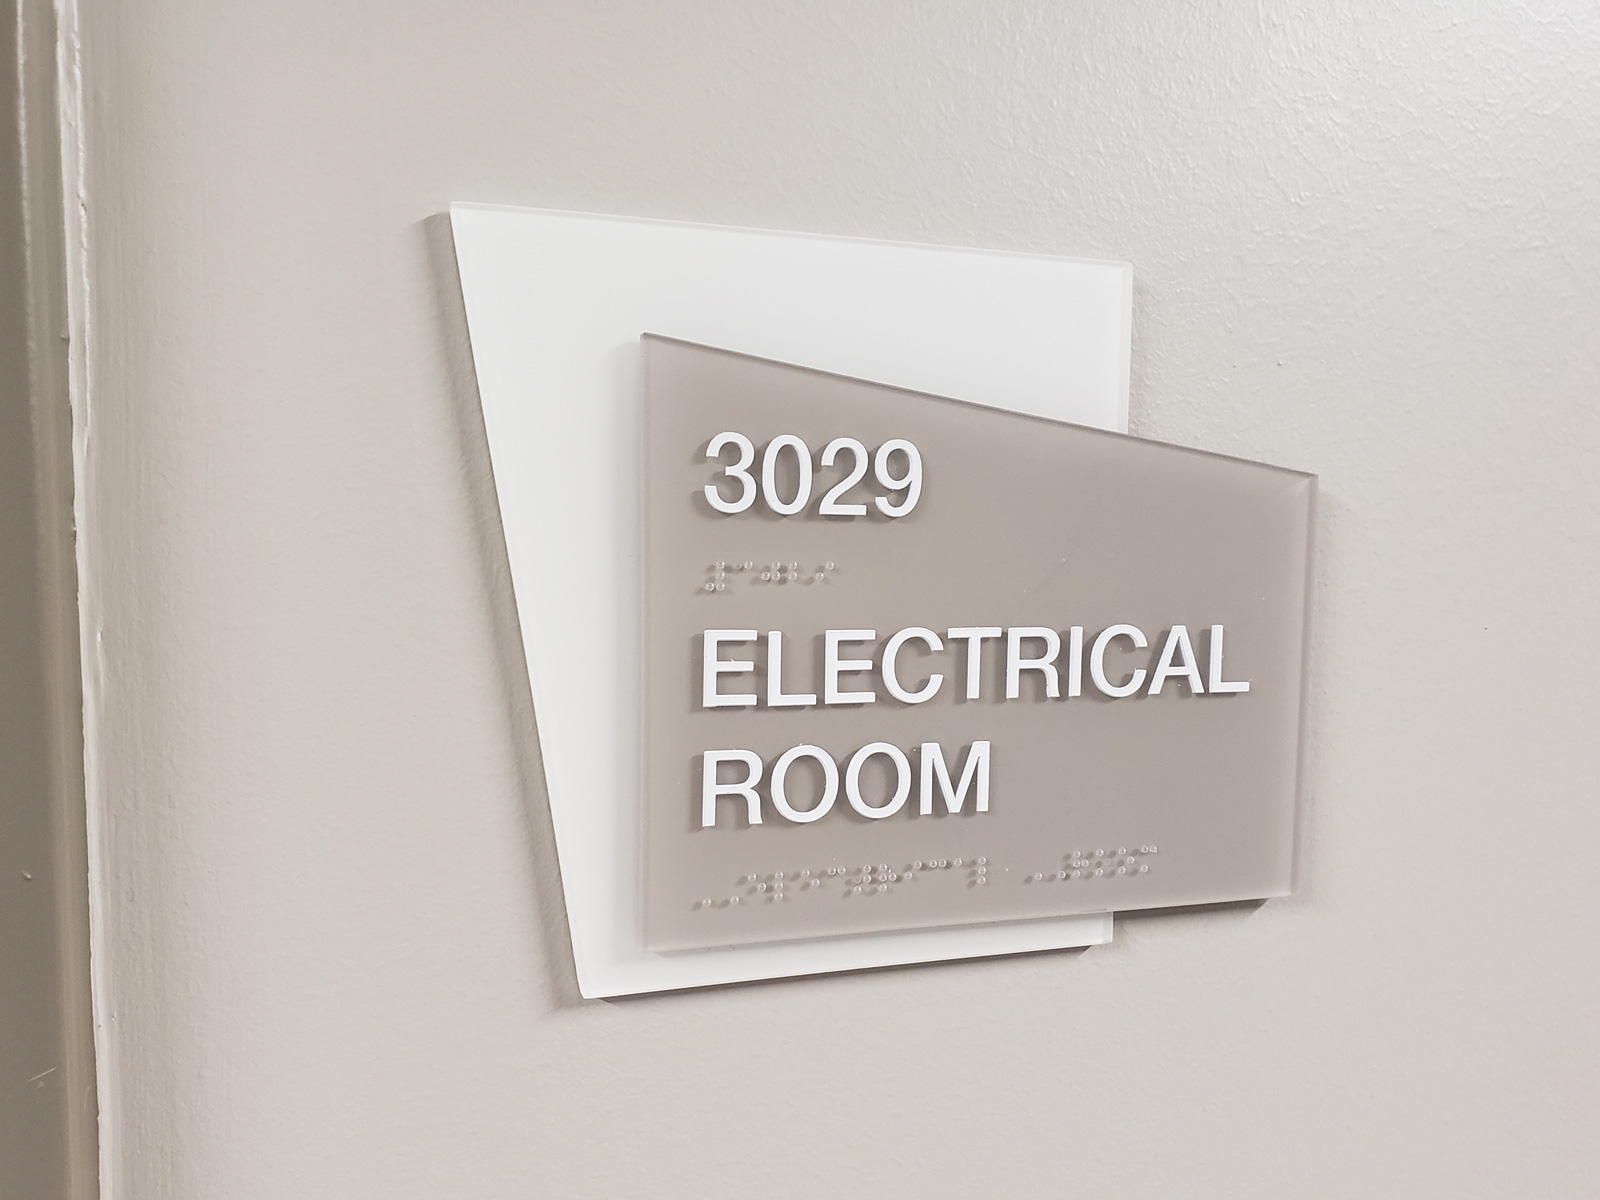 Custom interior room identification sign with tactile copy for The Heights Hospital.